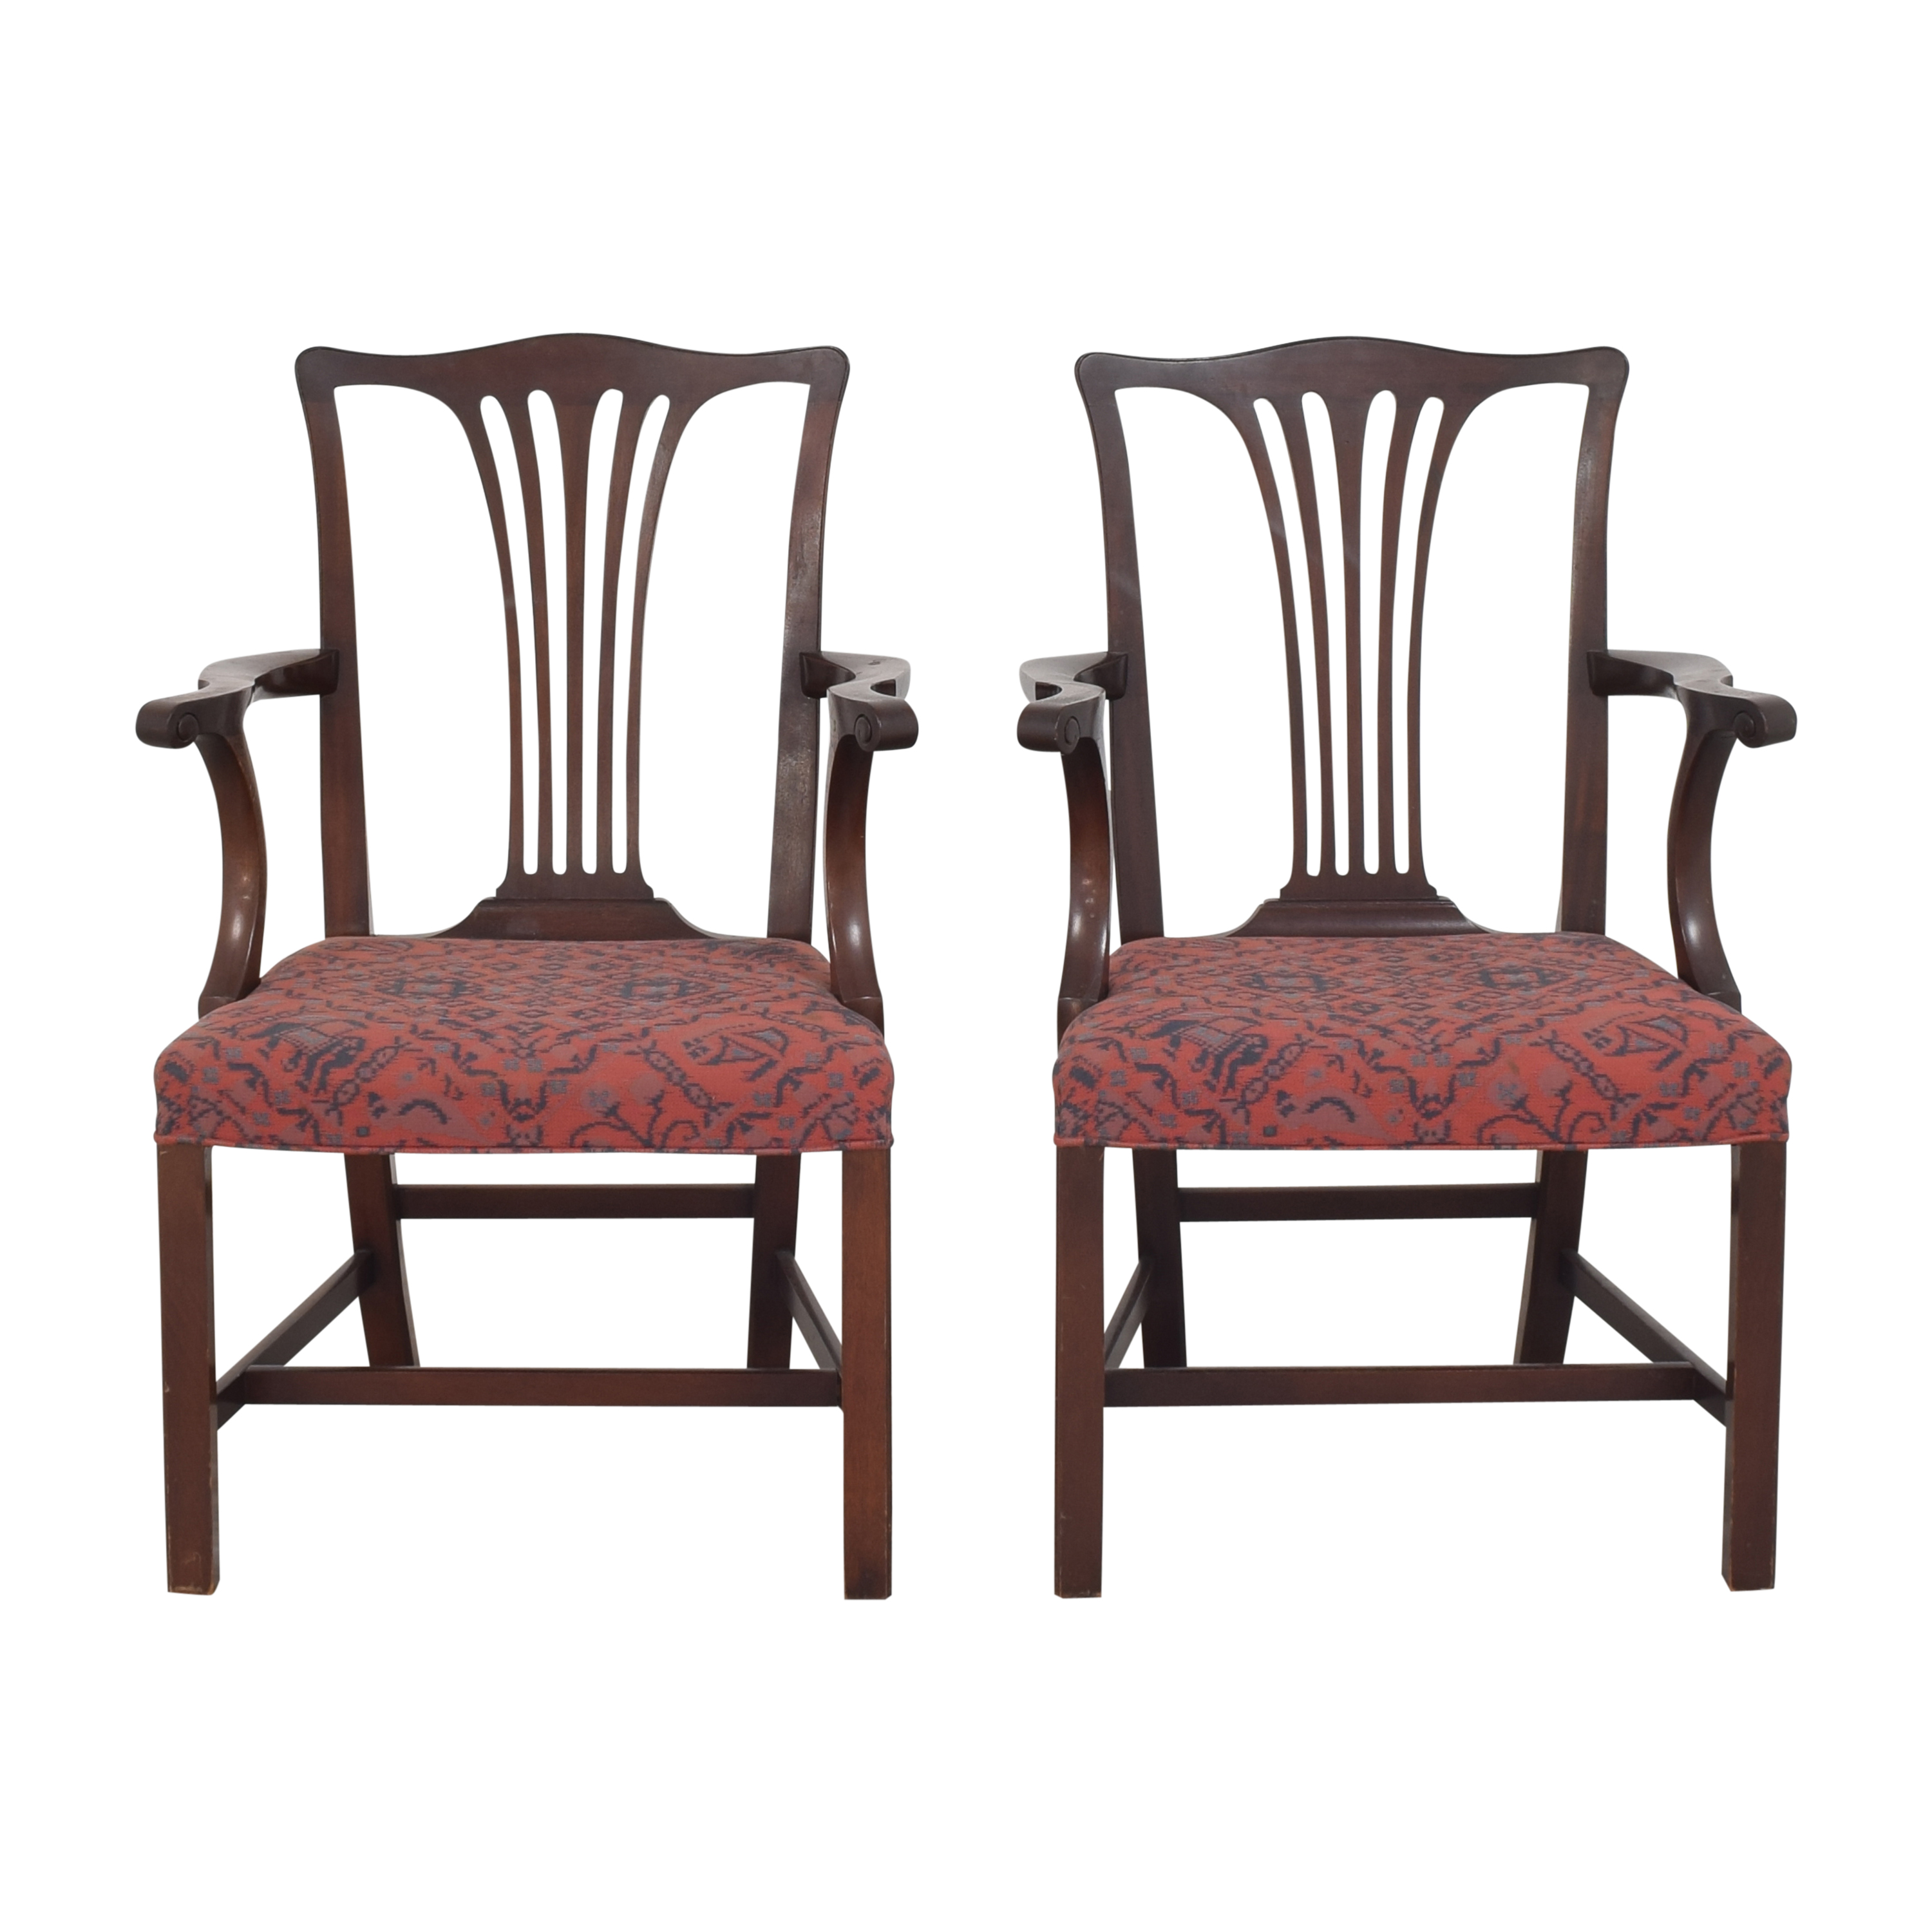 Wood & Hogan Wood & Hogan Country Chippendale Dining Arm Chairs Chairs